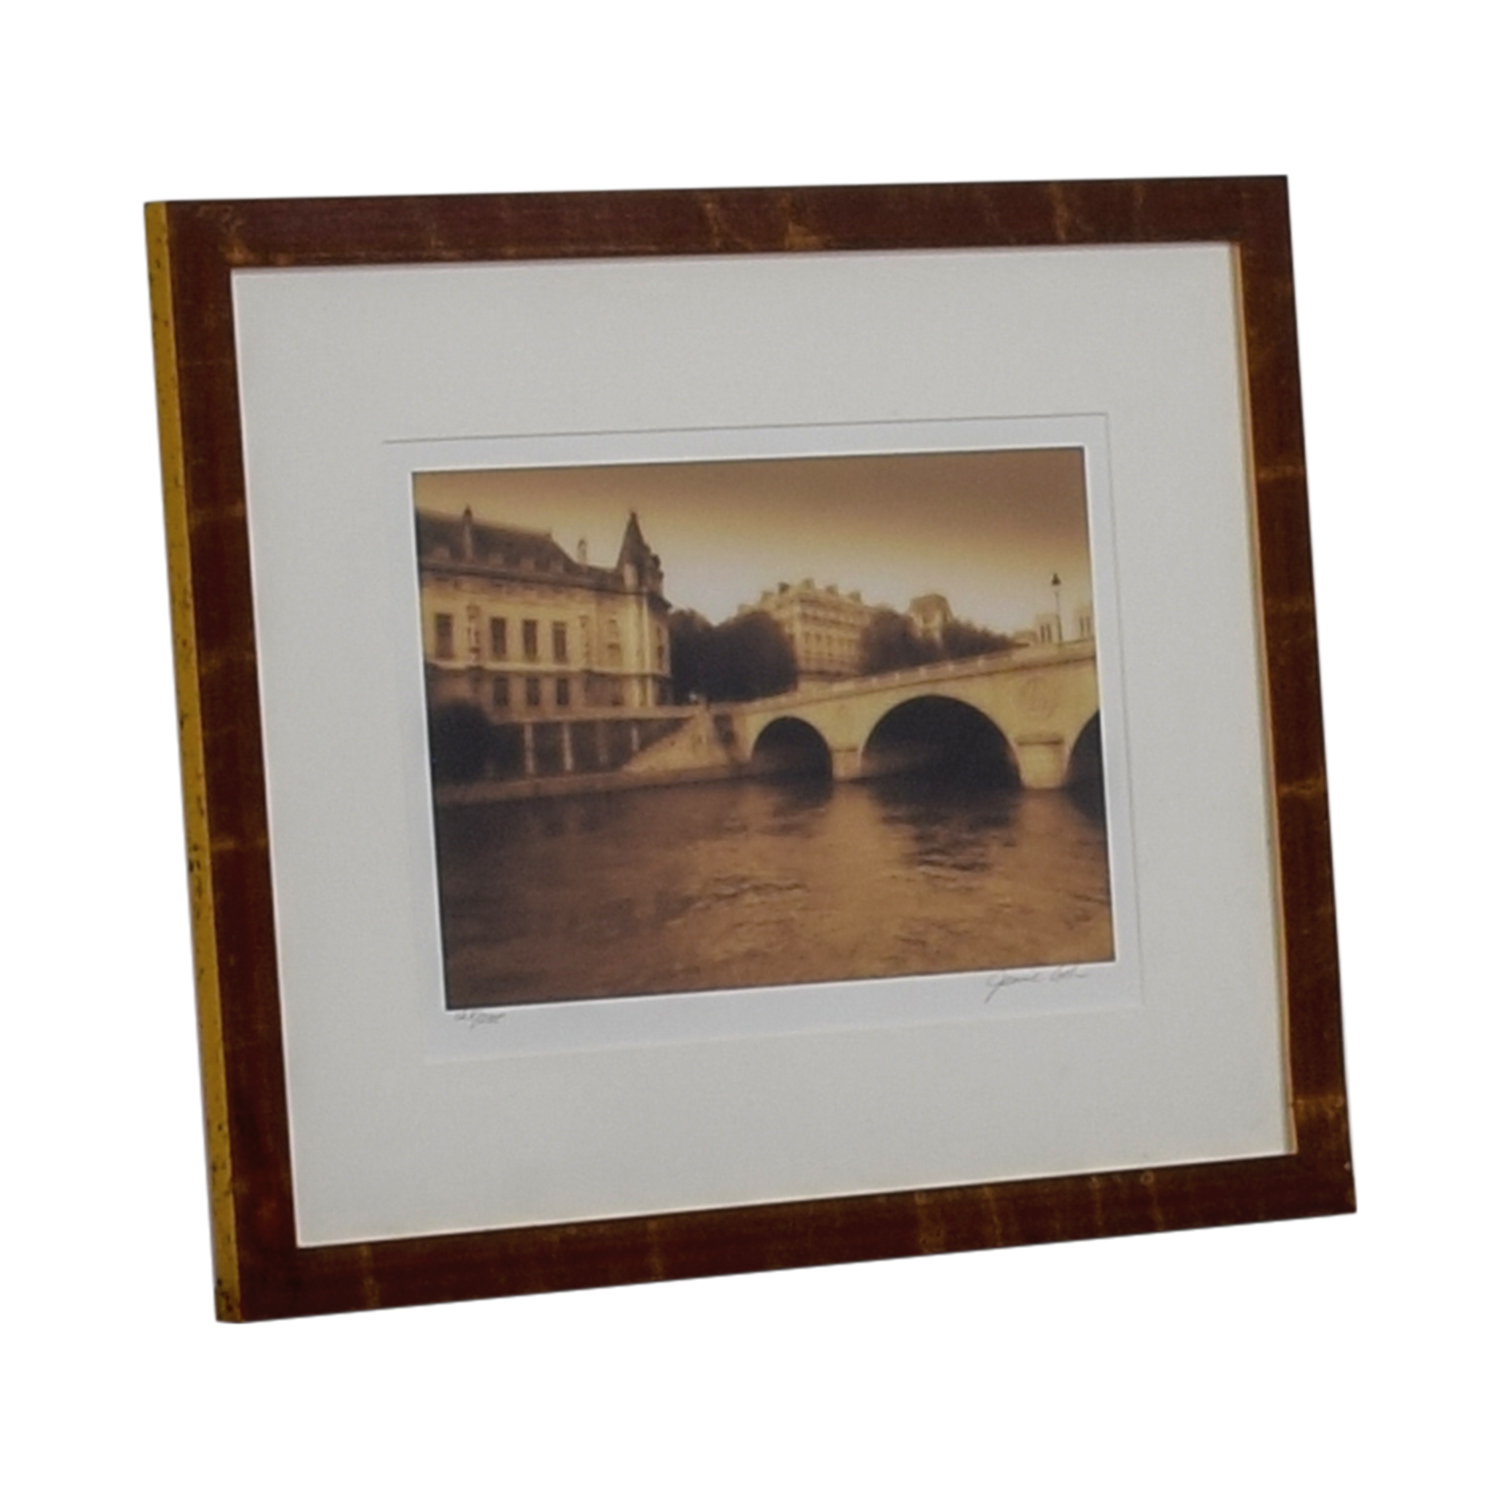 European Scenic Bridge Scene Framed Artwork White/Brown